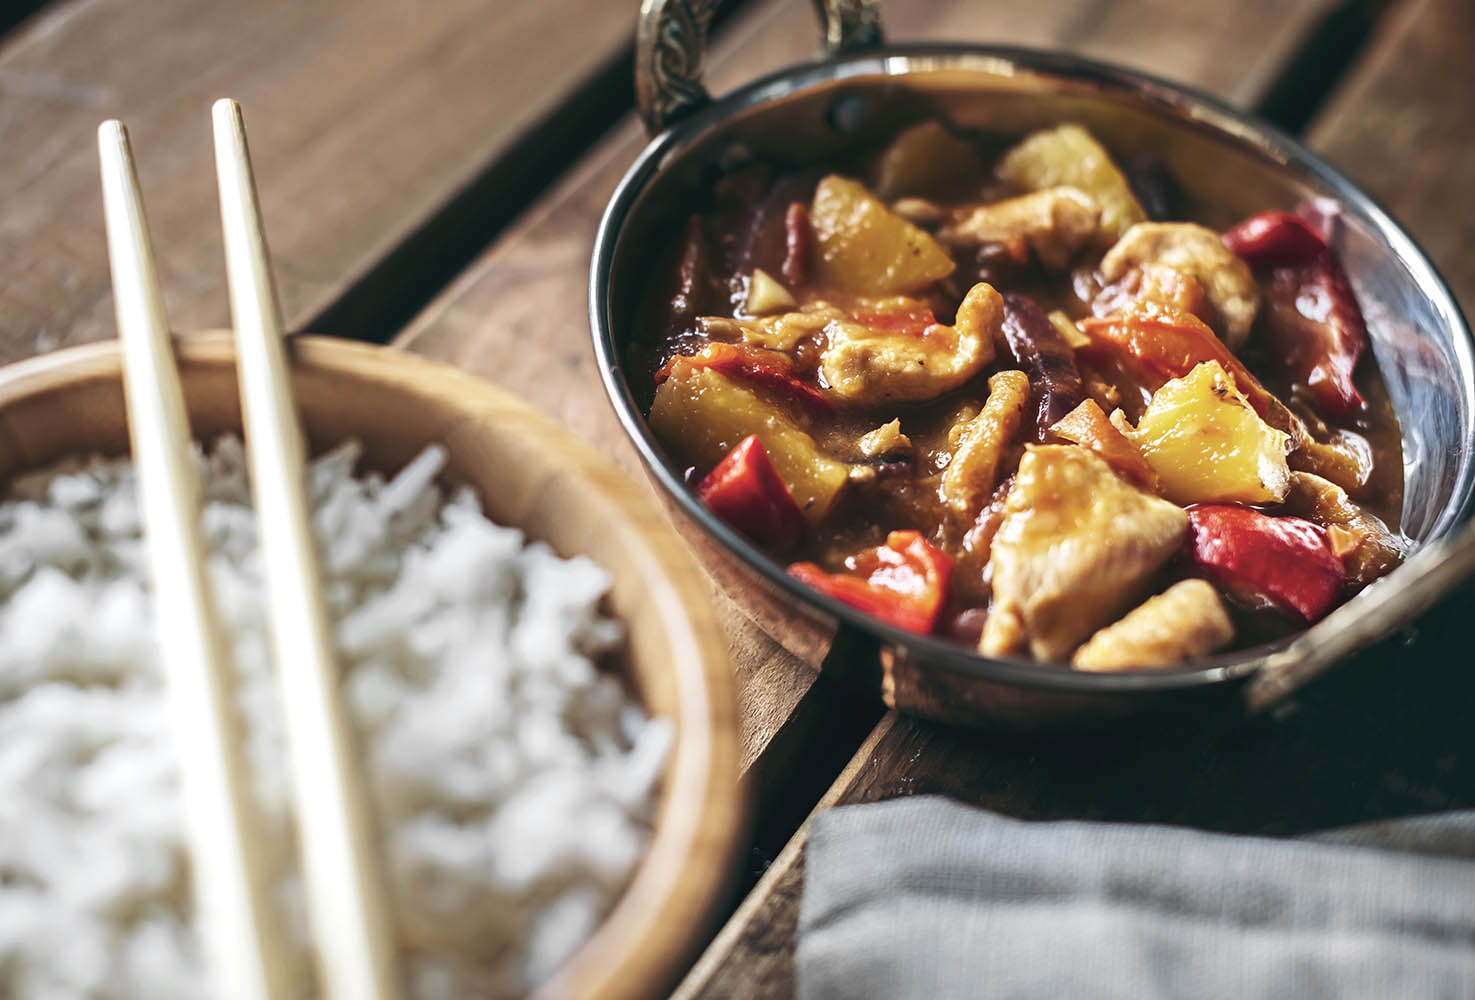 View of Chinese spicy chicken dish and rice in bowl with chopsti